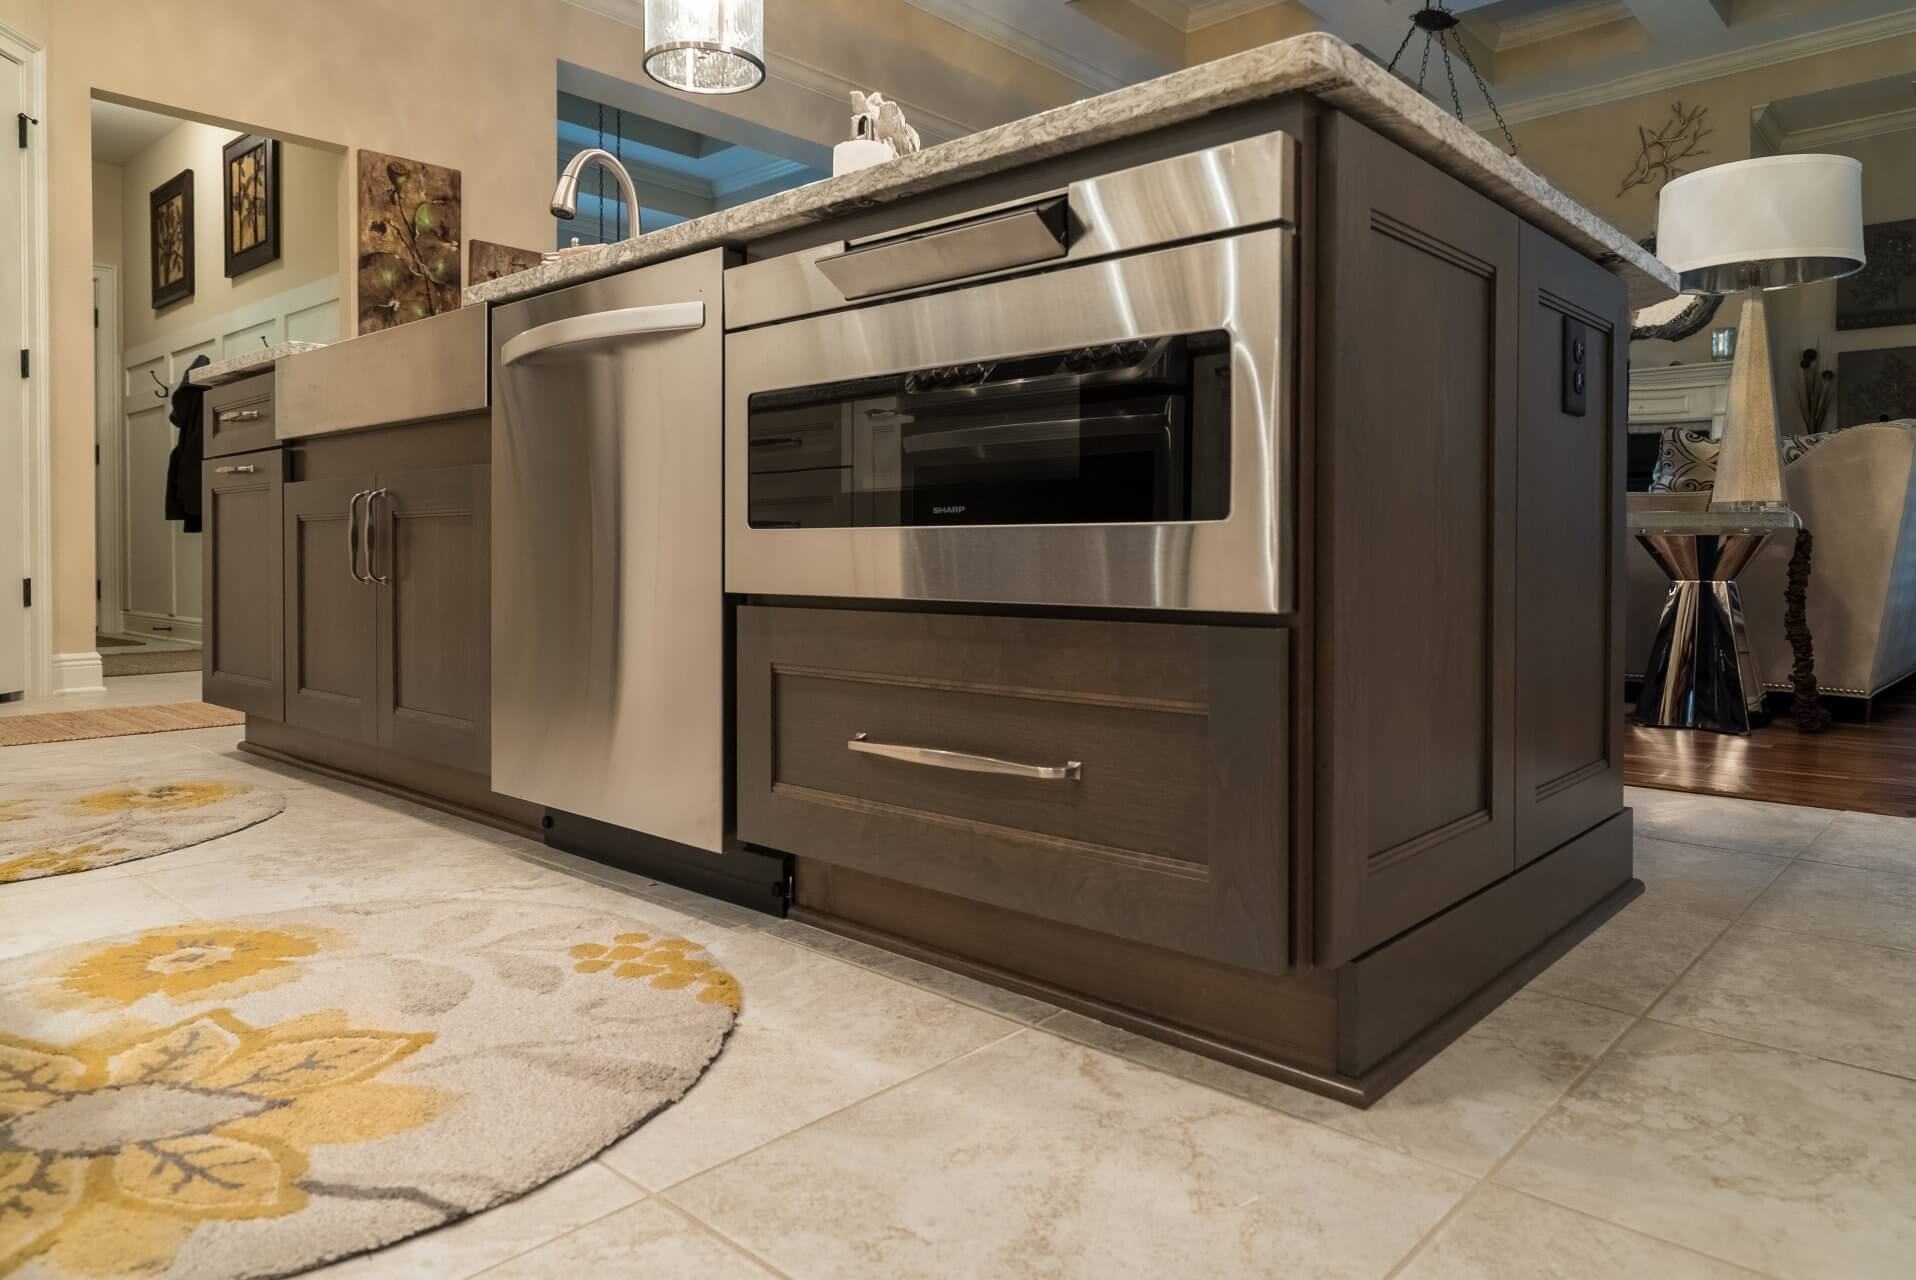 Modern stainless appliances and new Dura Supreme cabinets